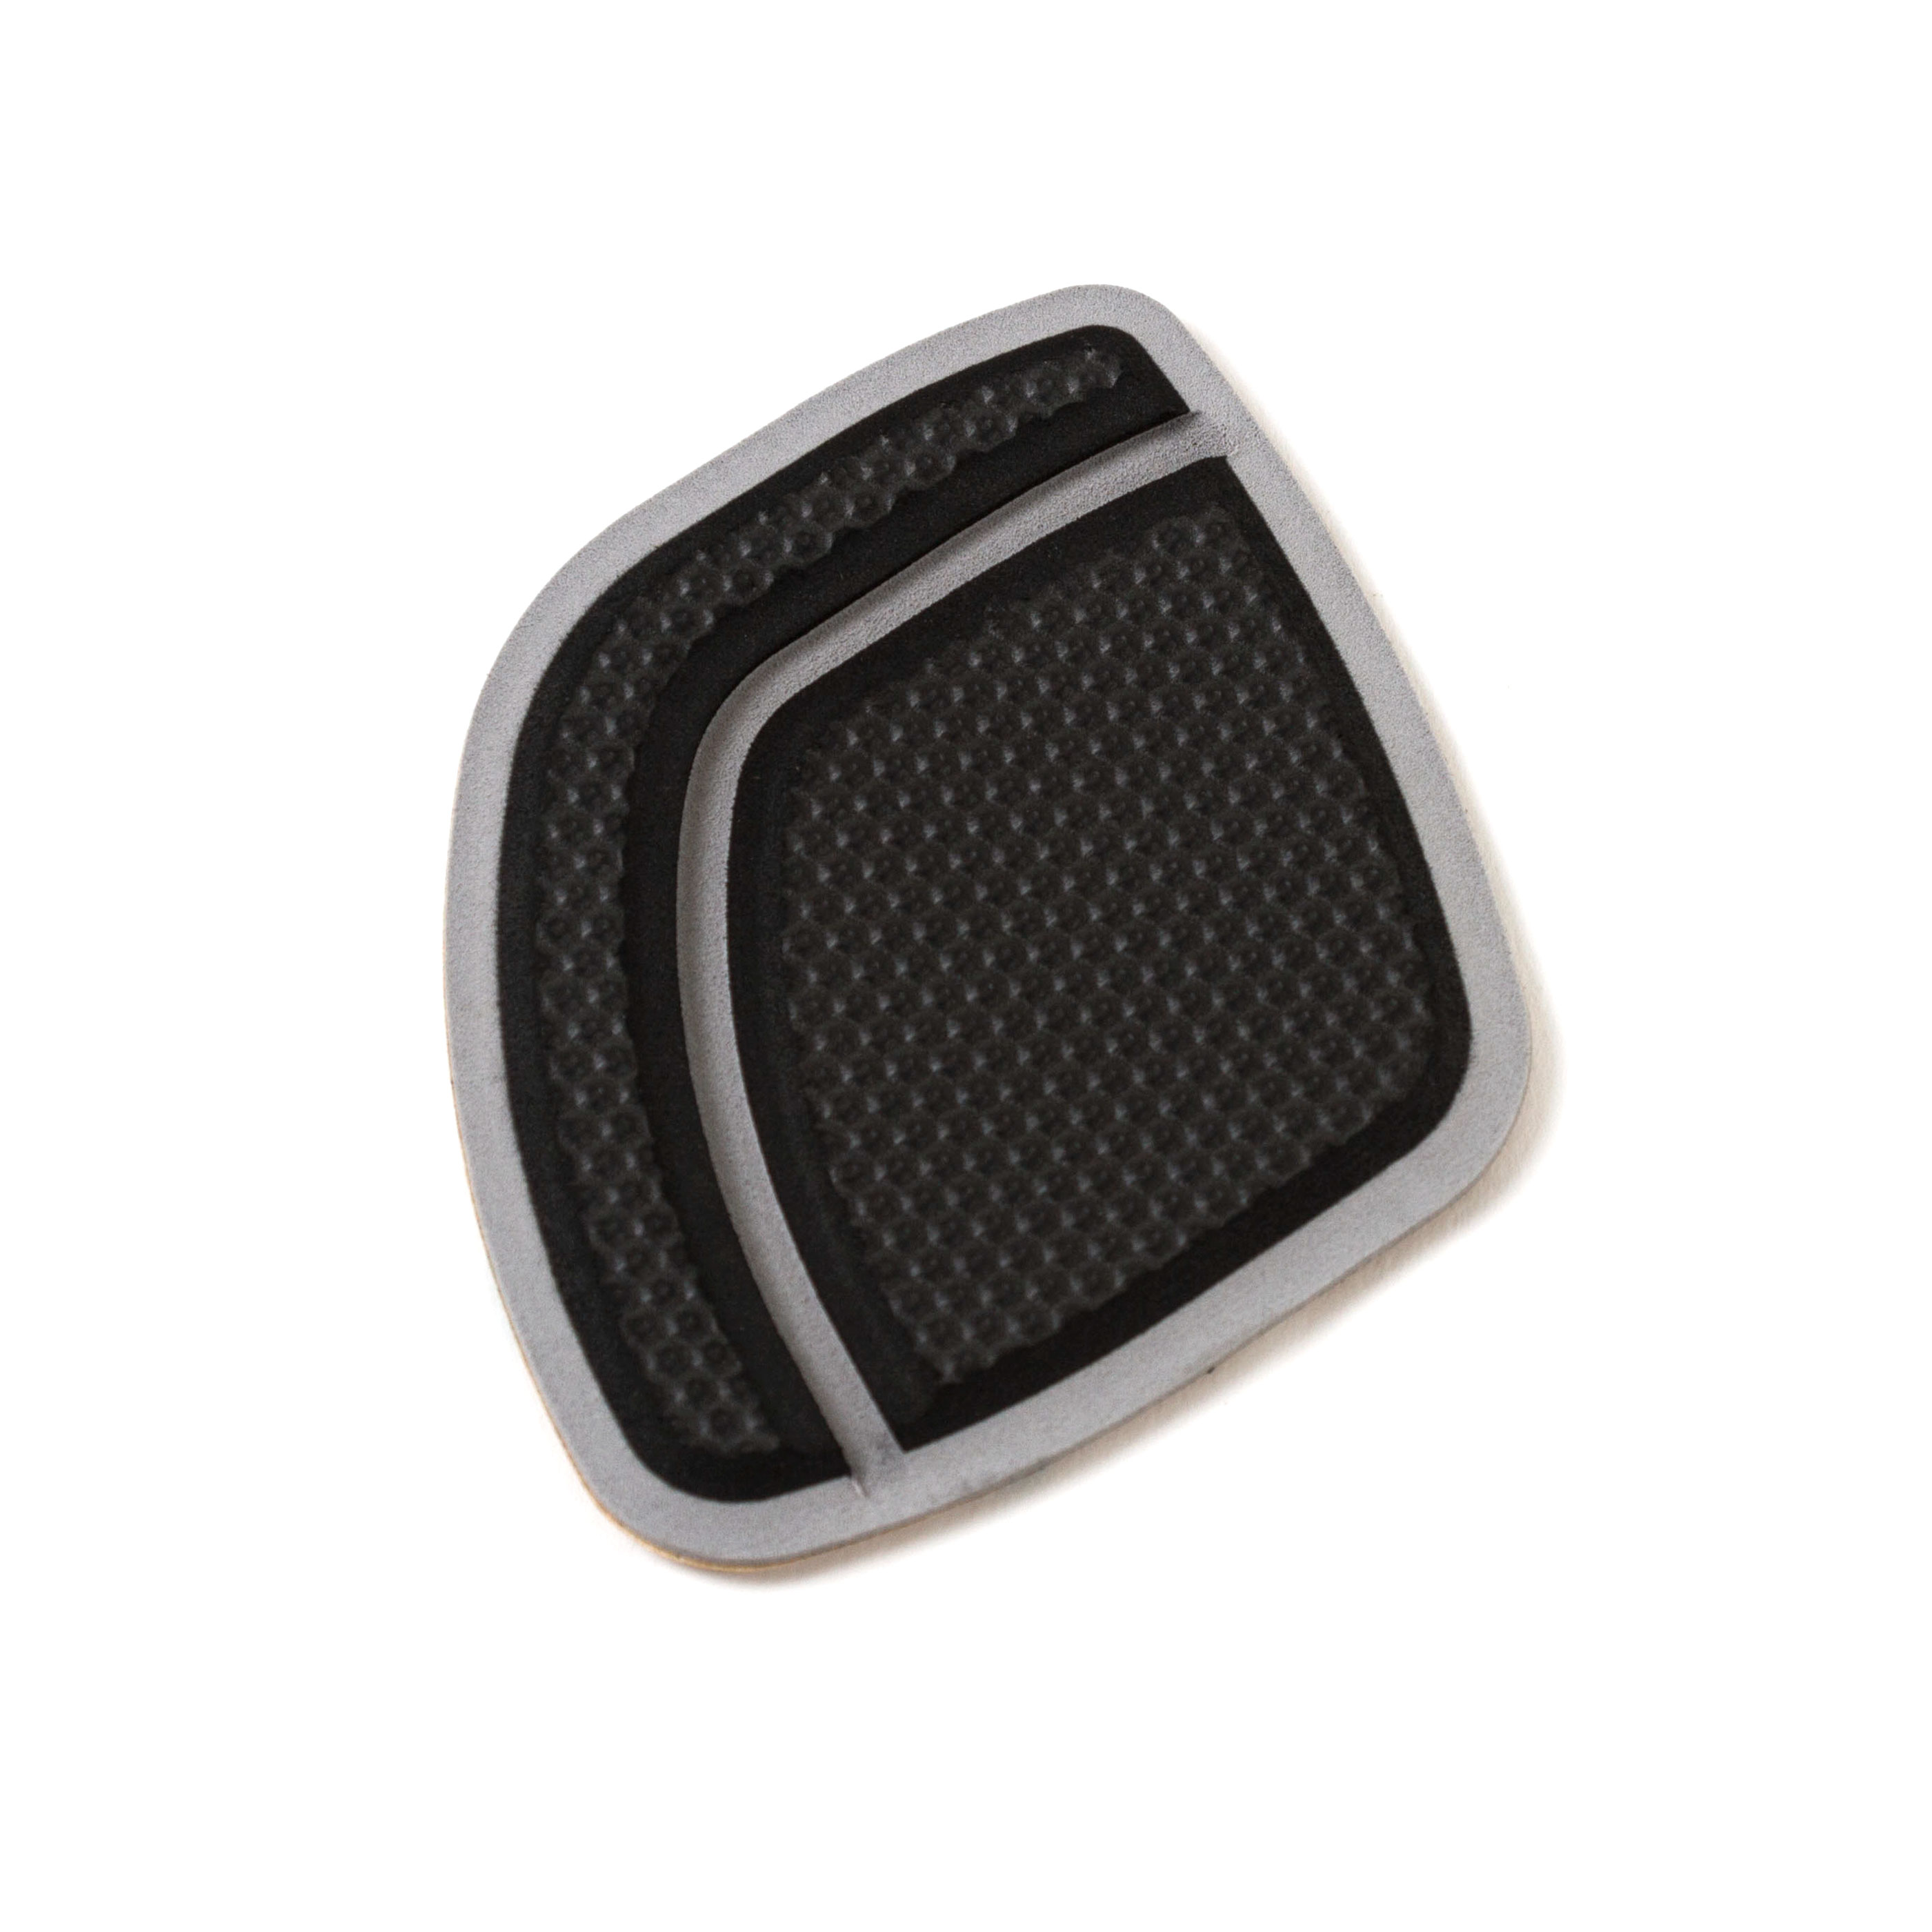 PEDAL PAD, RT MD180